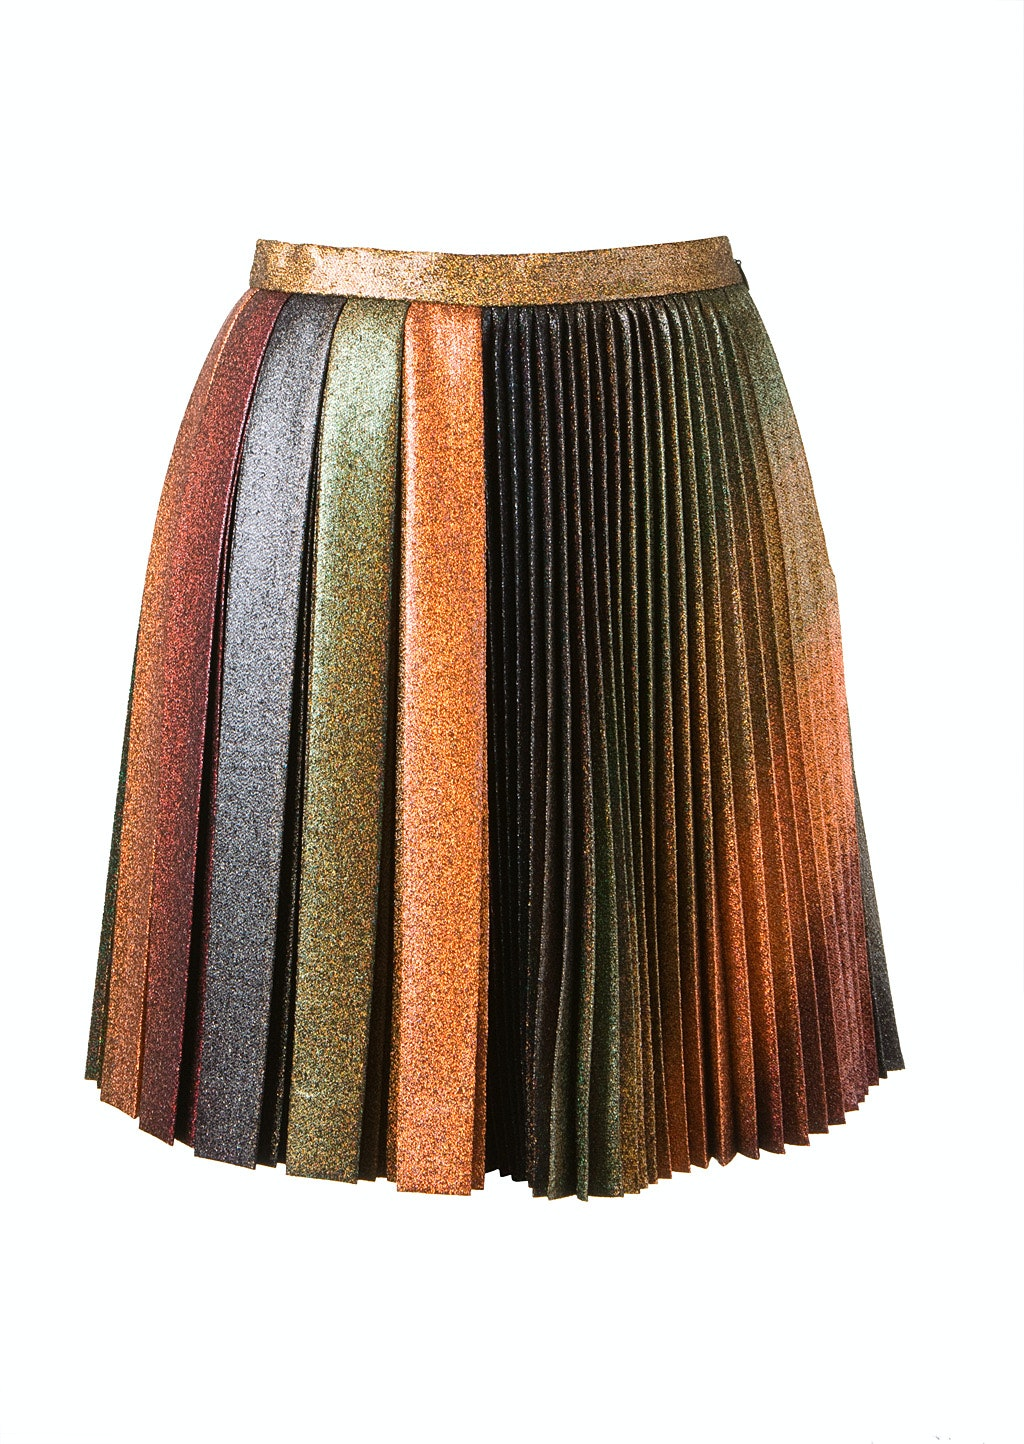 Taylor Swift S Glitter Pleated Skirt Is Perfect And Expensive So Here Are Some More Affordable Dupes